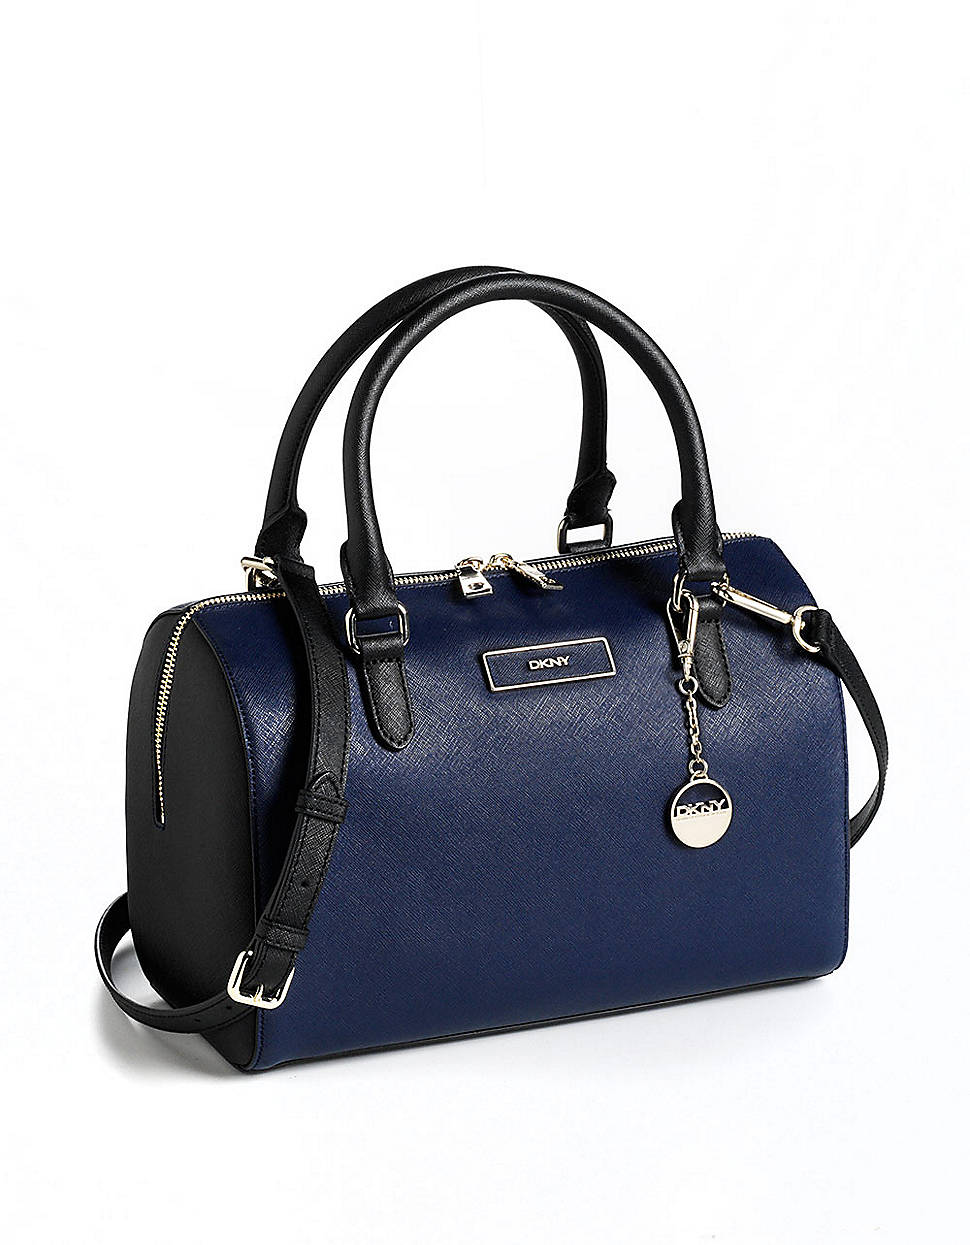 Dkny Saffiano Leather Satchel Bag in Blue (navy)